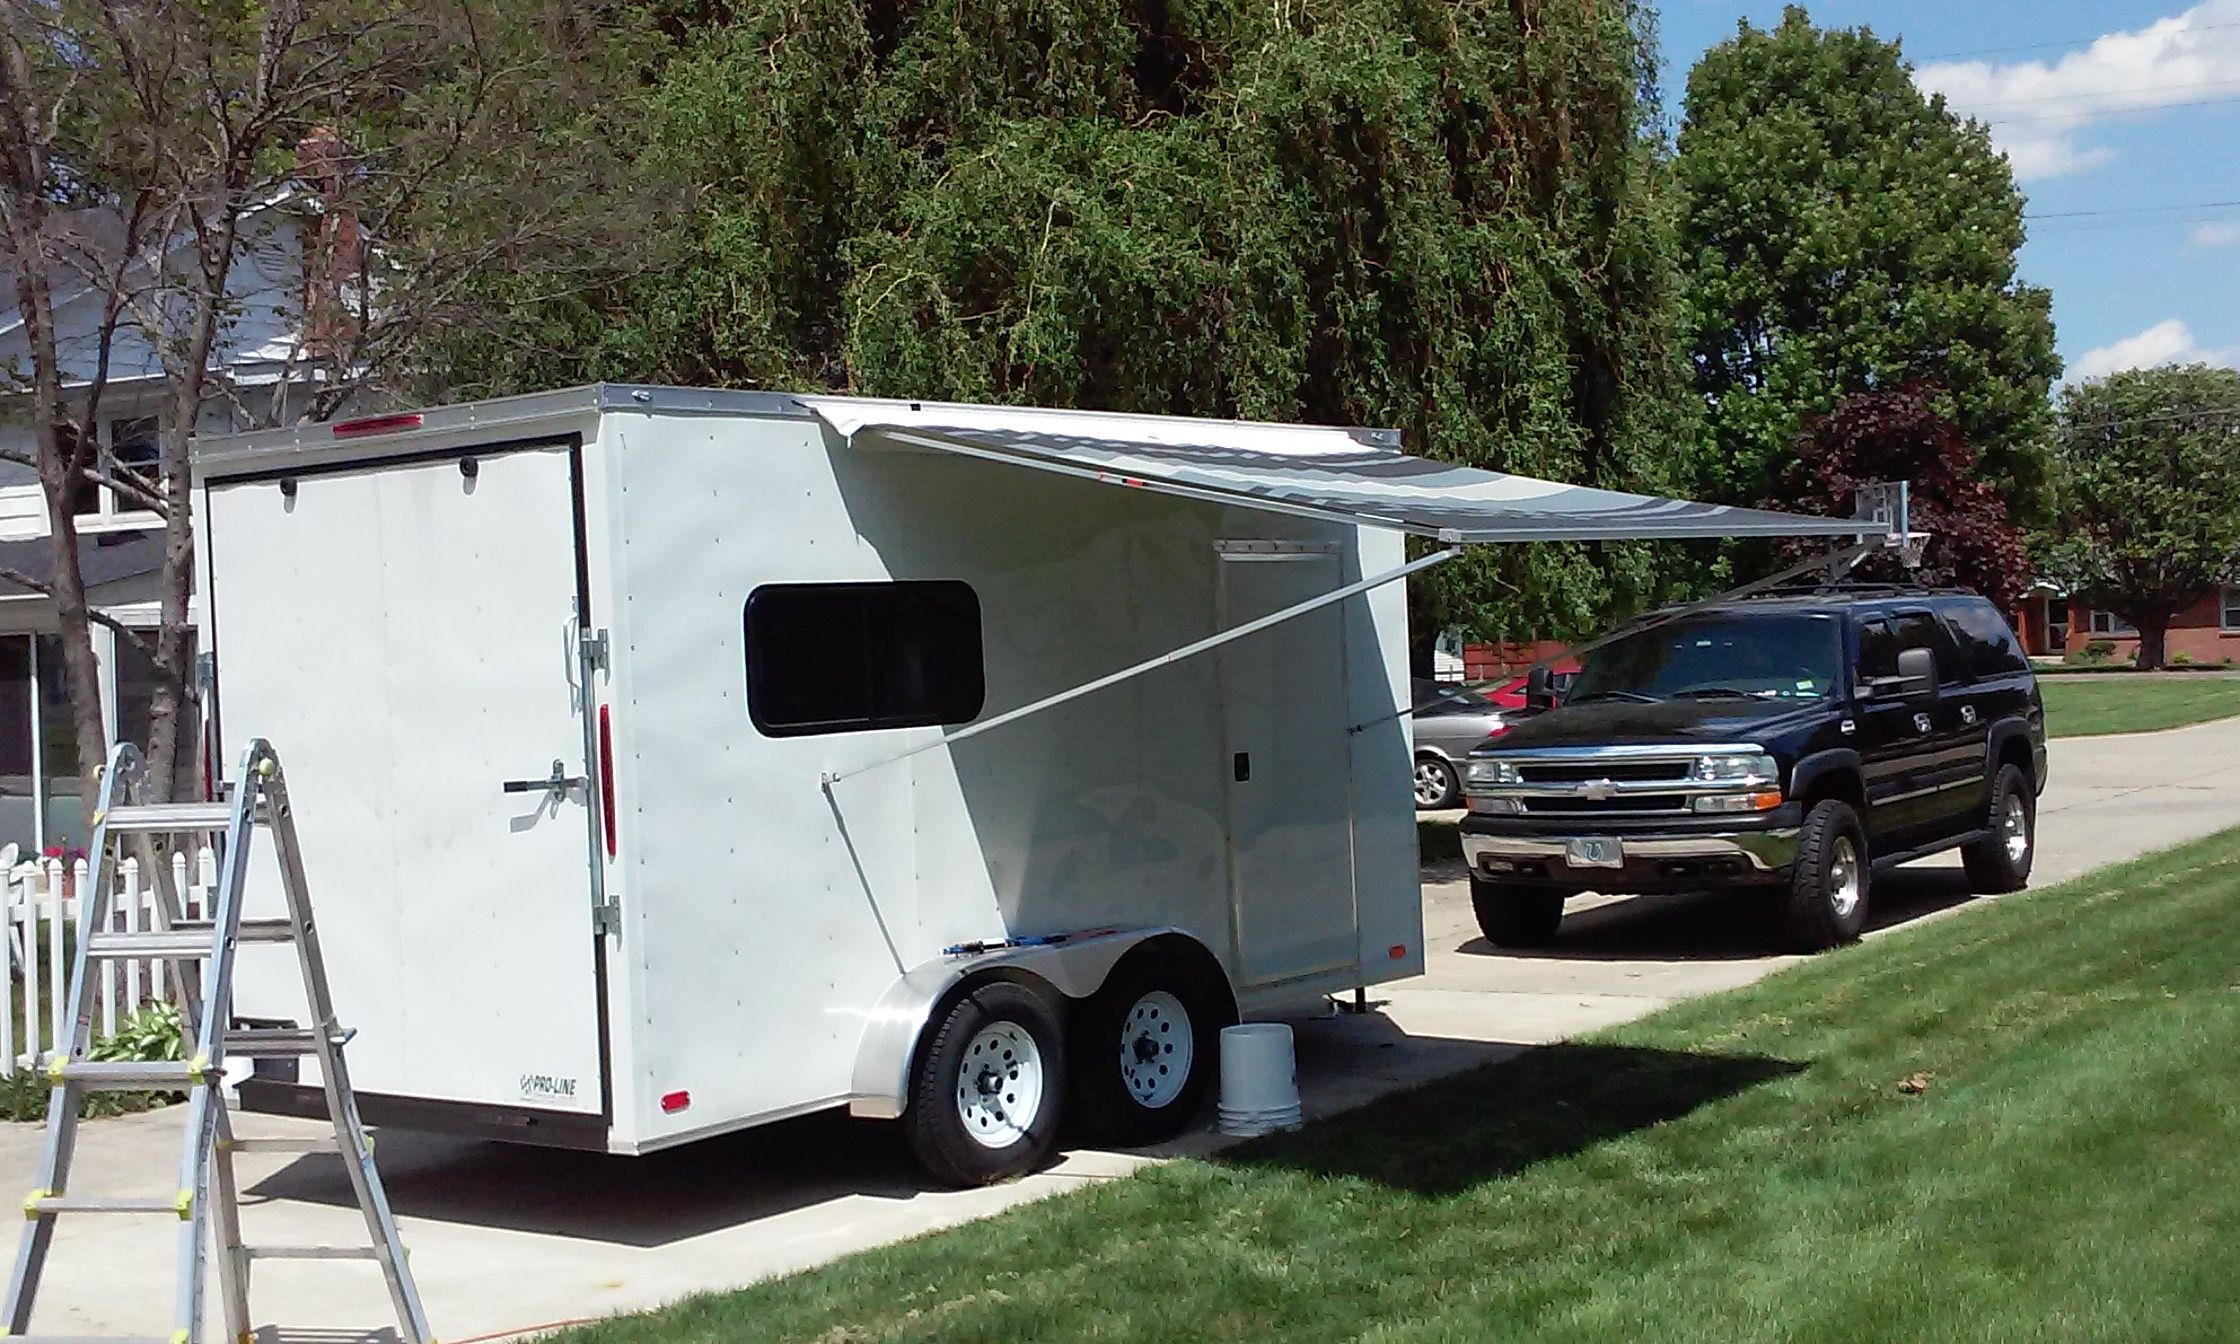 We Started With A Custom Ordered 7x14 Tandem Axle V Nosed Trailer With Two Windows Installed The Goal Was To M Build A Camper Camper Cargo Trailer Conversion